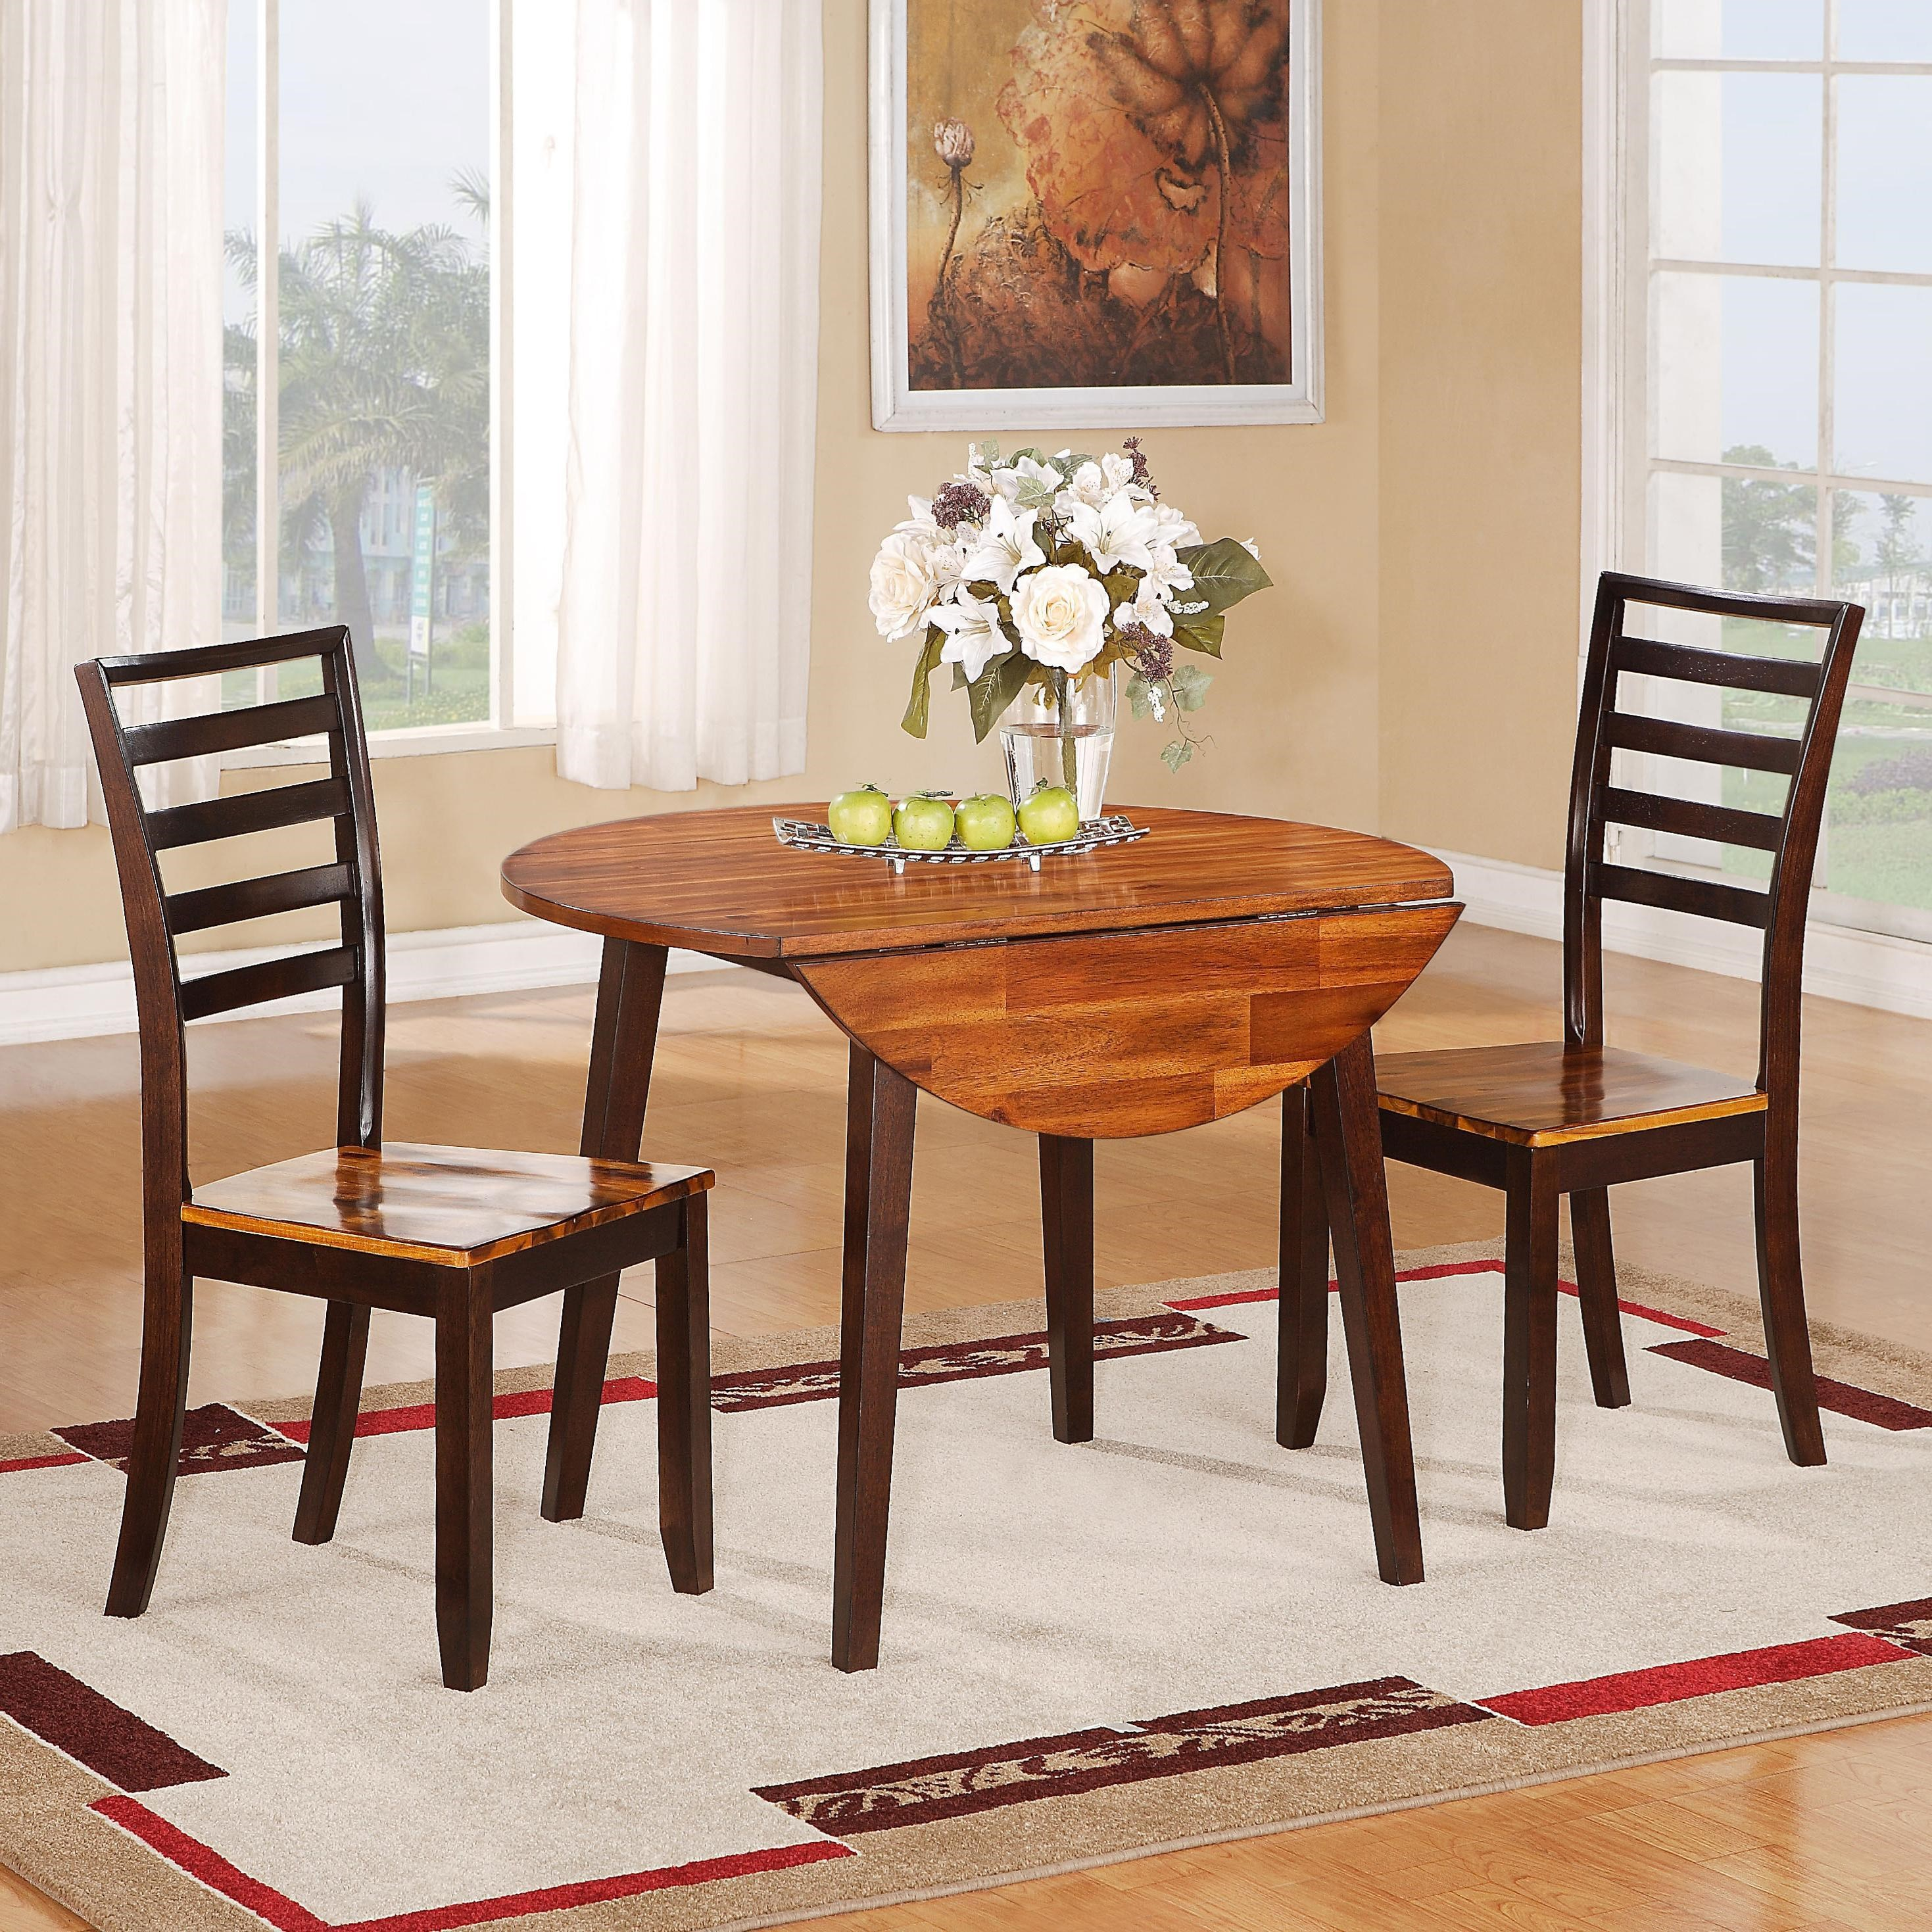 5 Piece Table and Side Chair Set